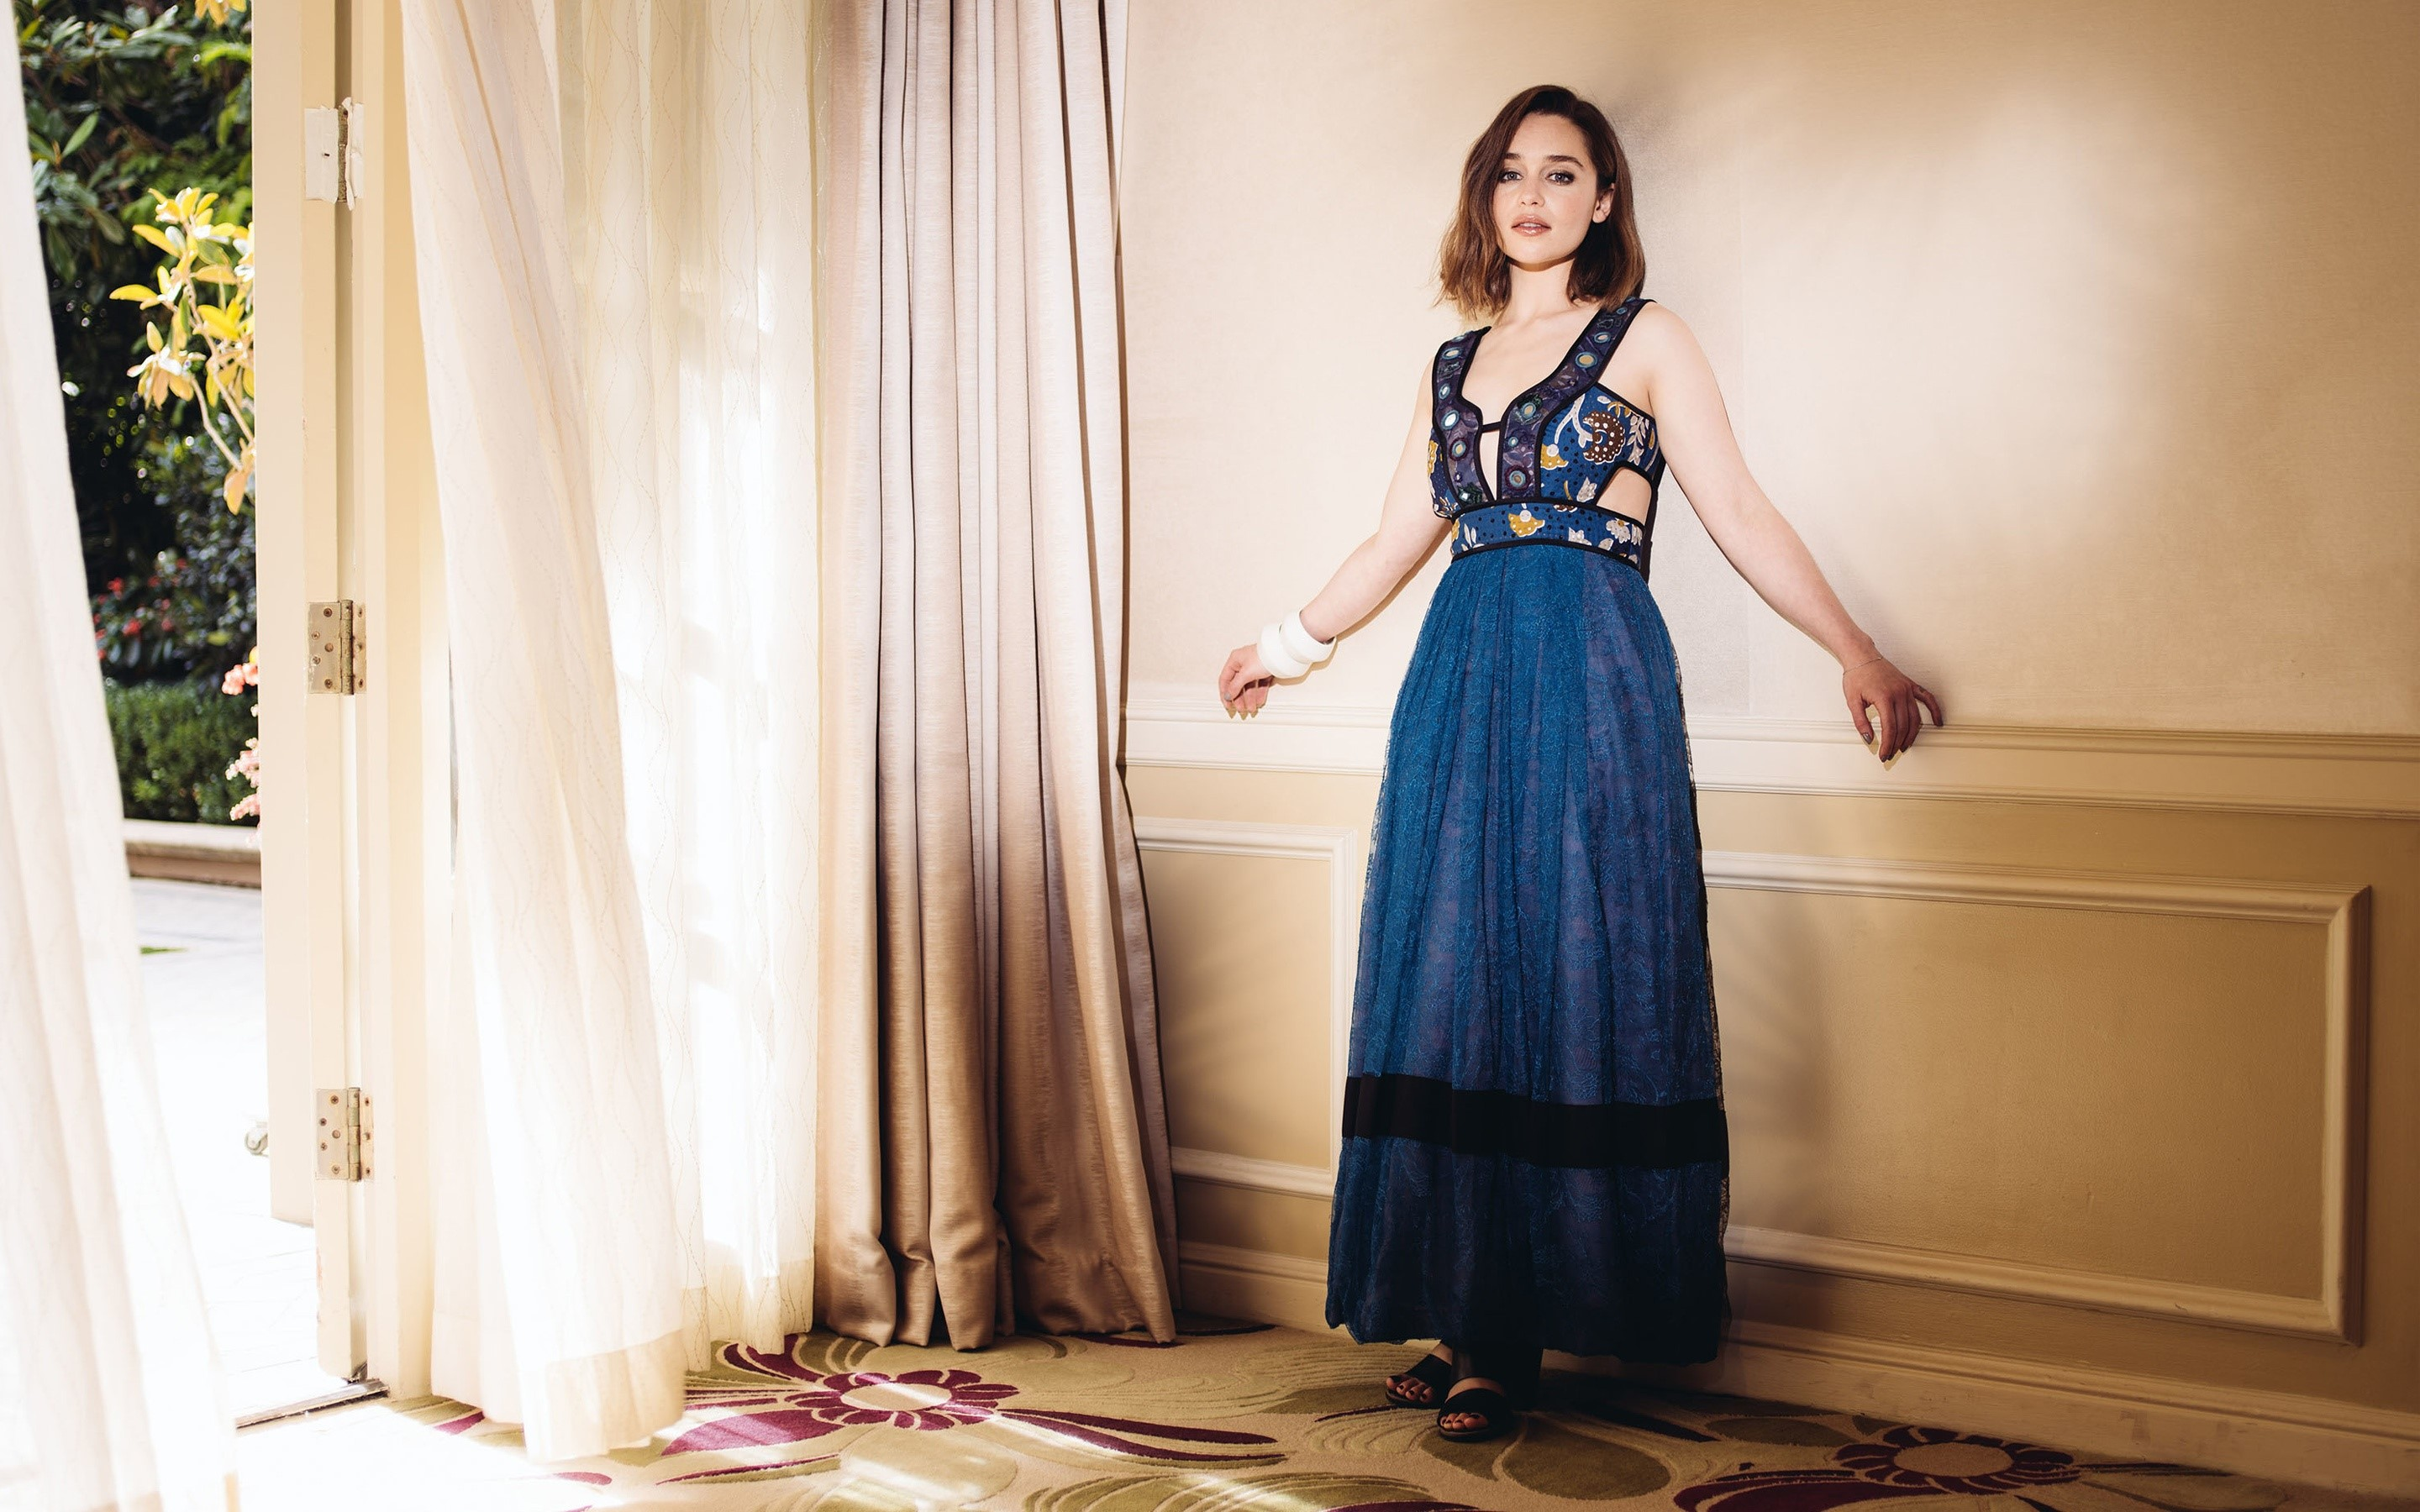 Wallpaper Emilia Clarke in a blue dress